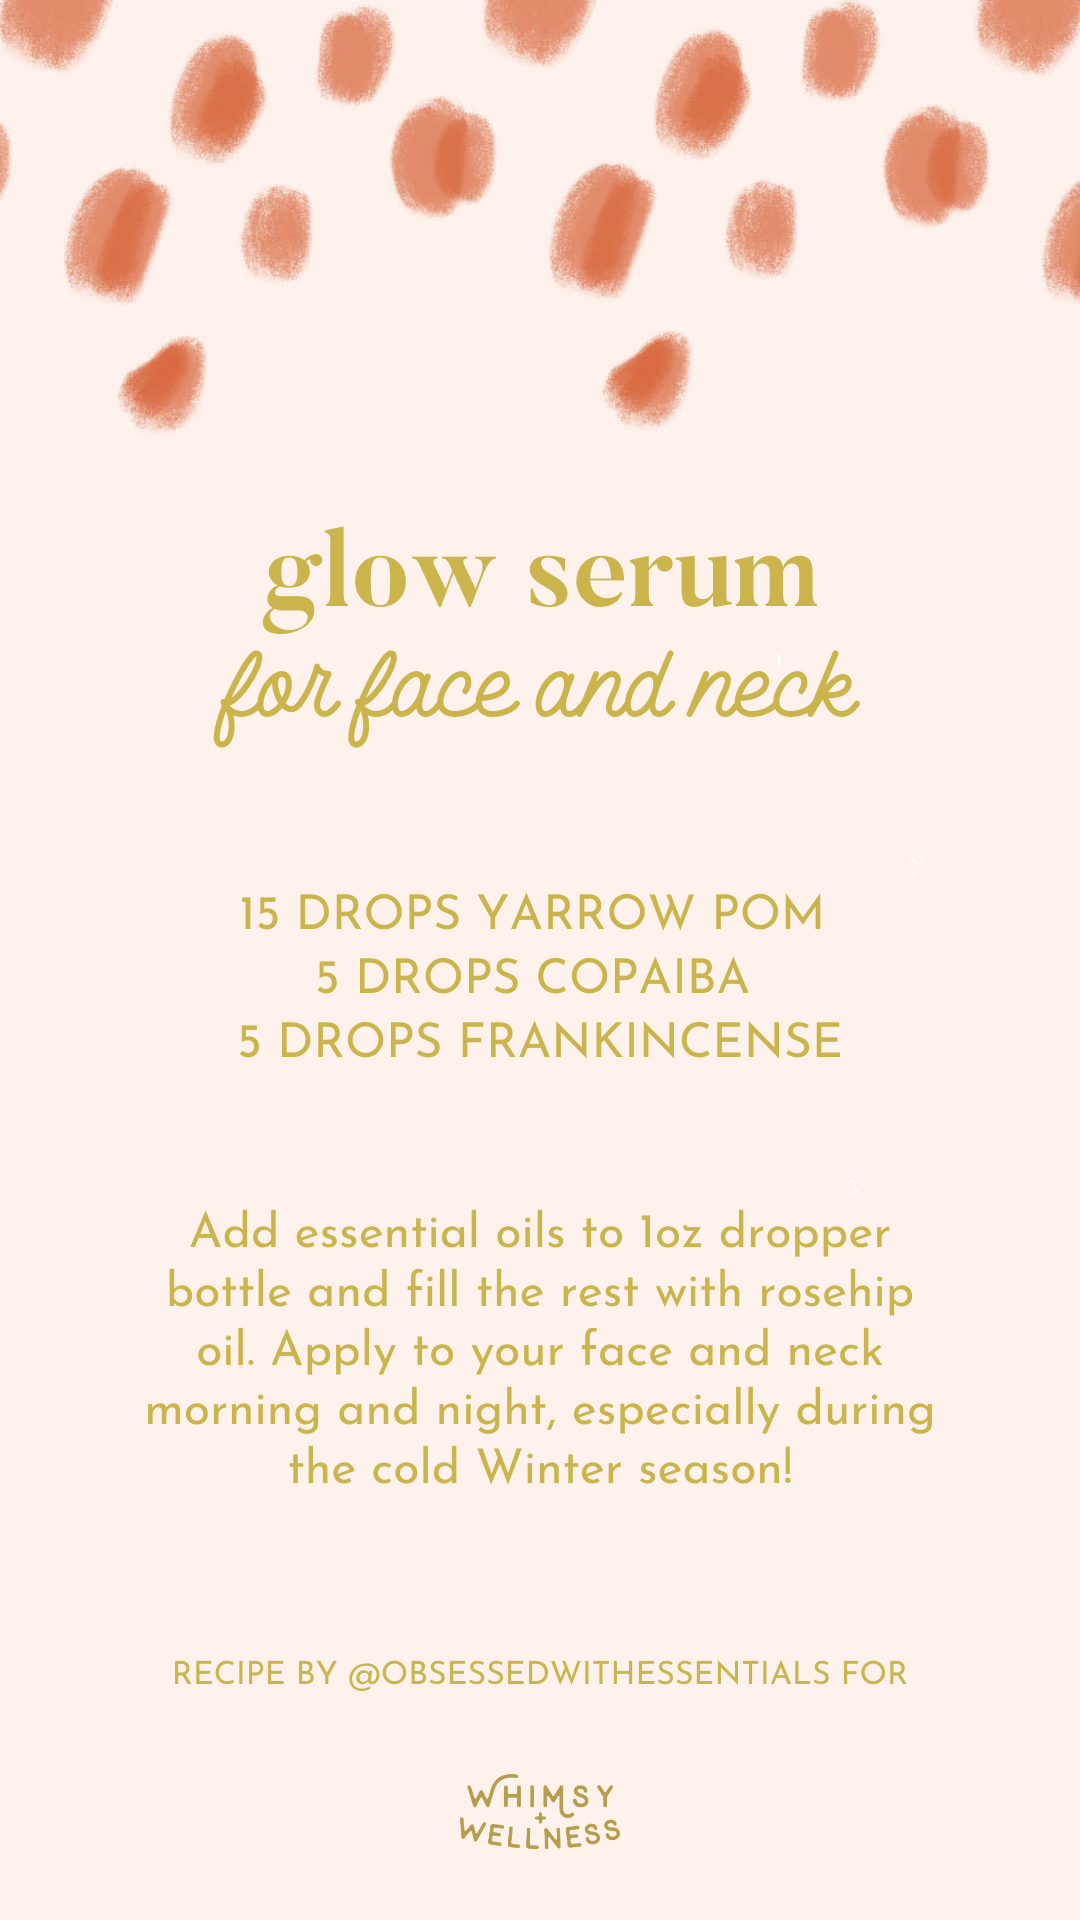 Melody Brandon shares a glow serum for face and neck blend using doTERRA essential oils with Whimsy + Wellness products.